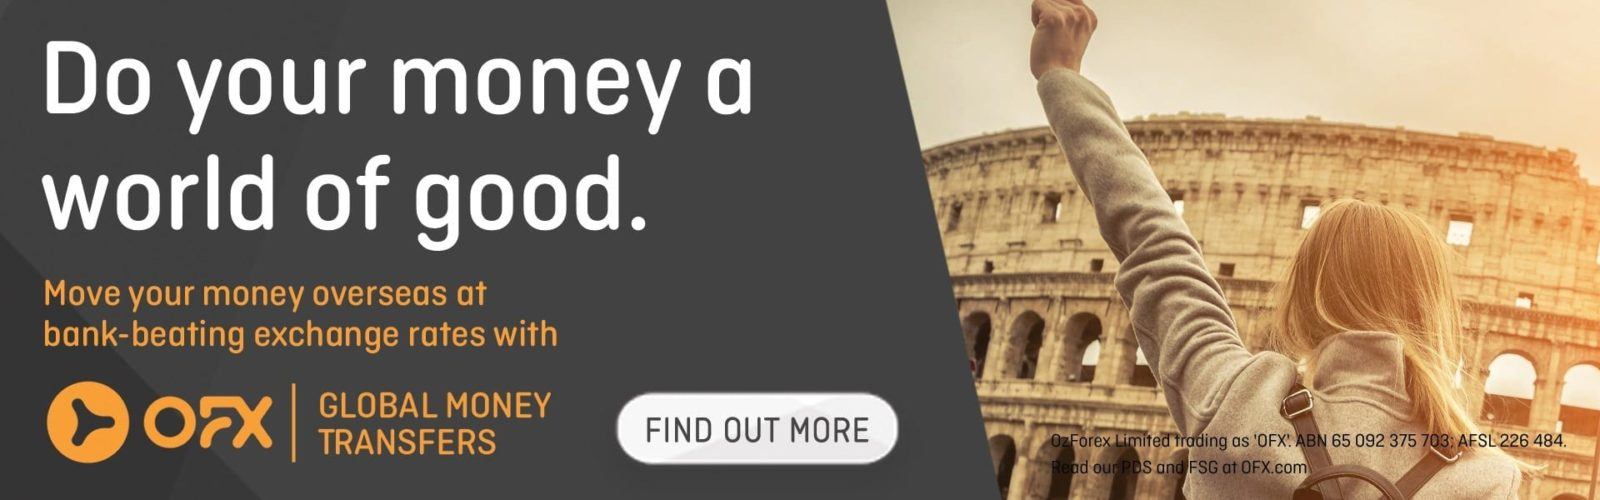 Do your money a world of good - OFX Global transfers